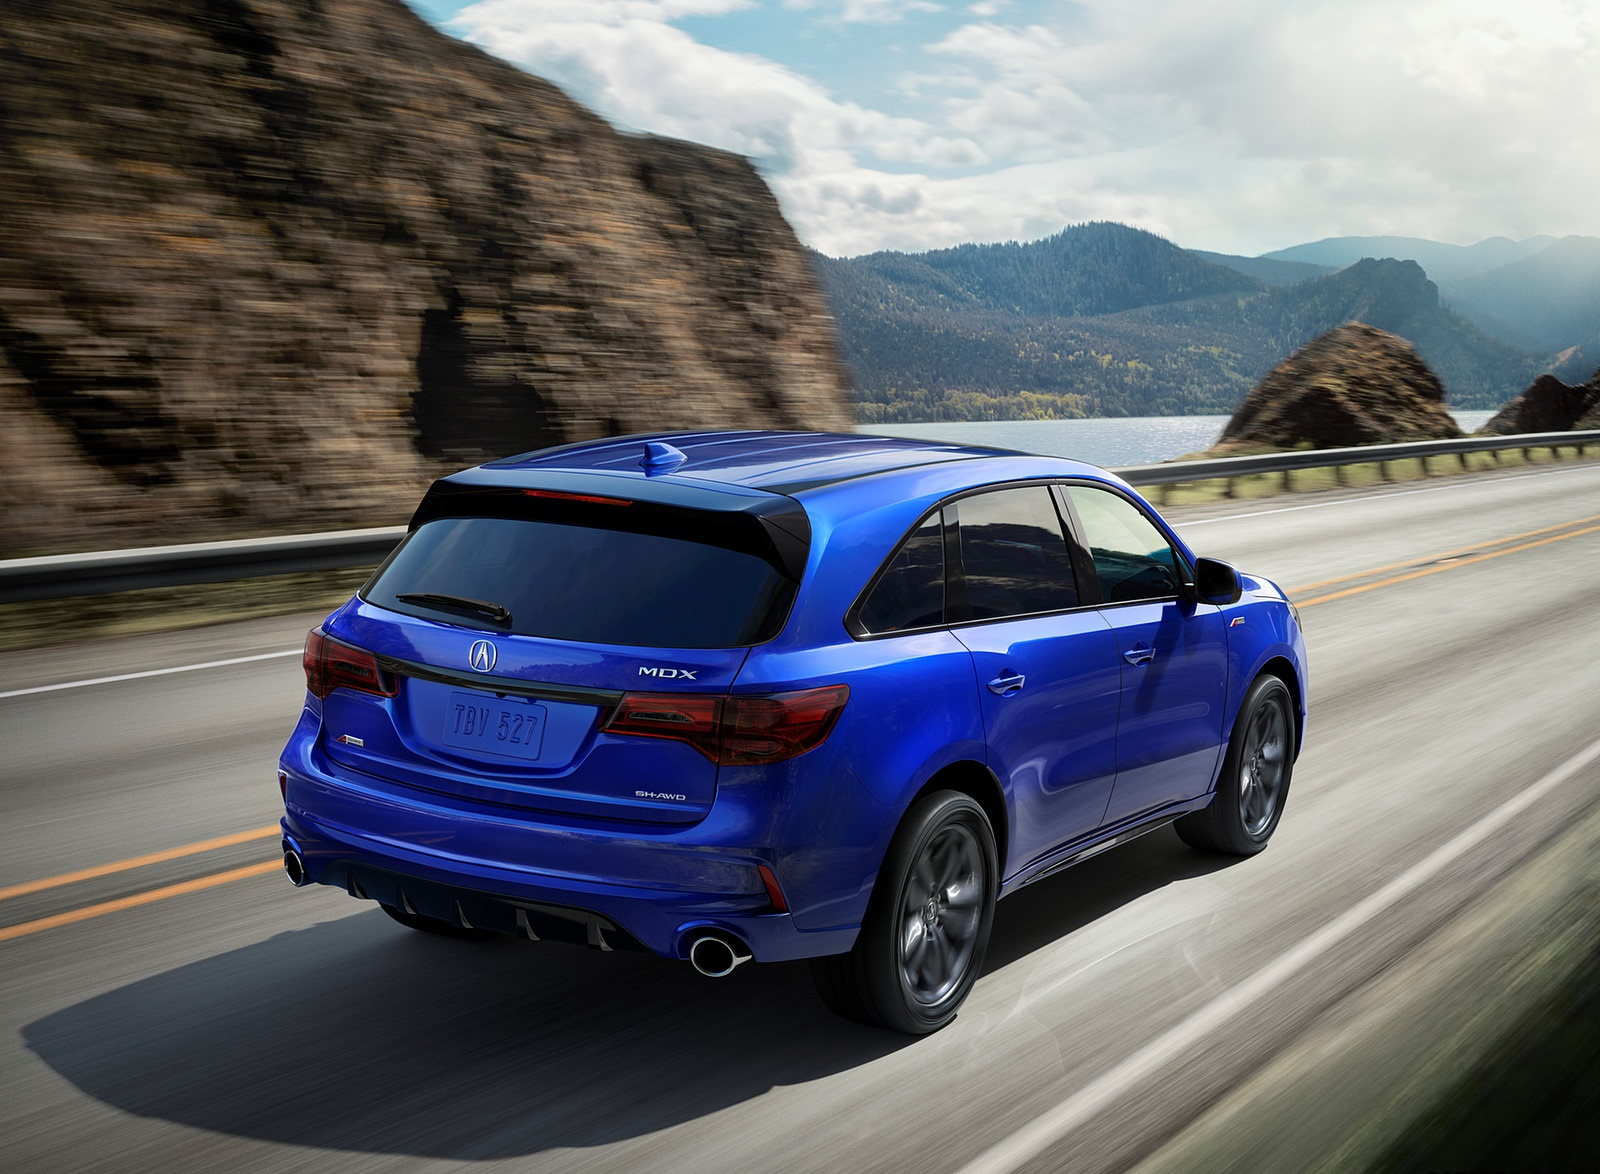 2019 Acura MDX A-Spec Rear Three-Quarter Wallpaper (2)